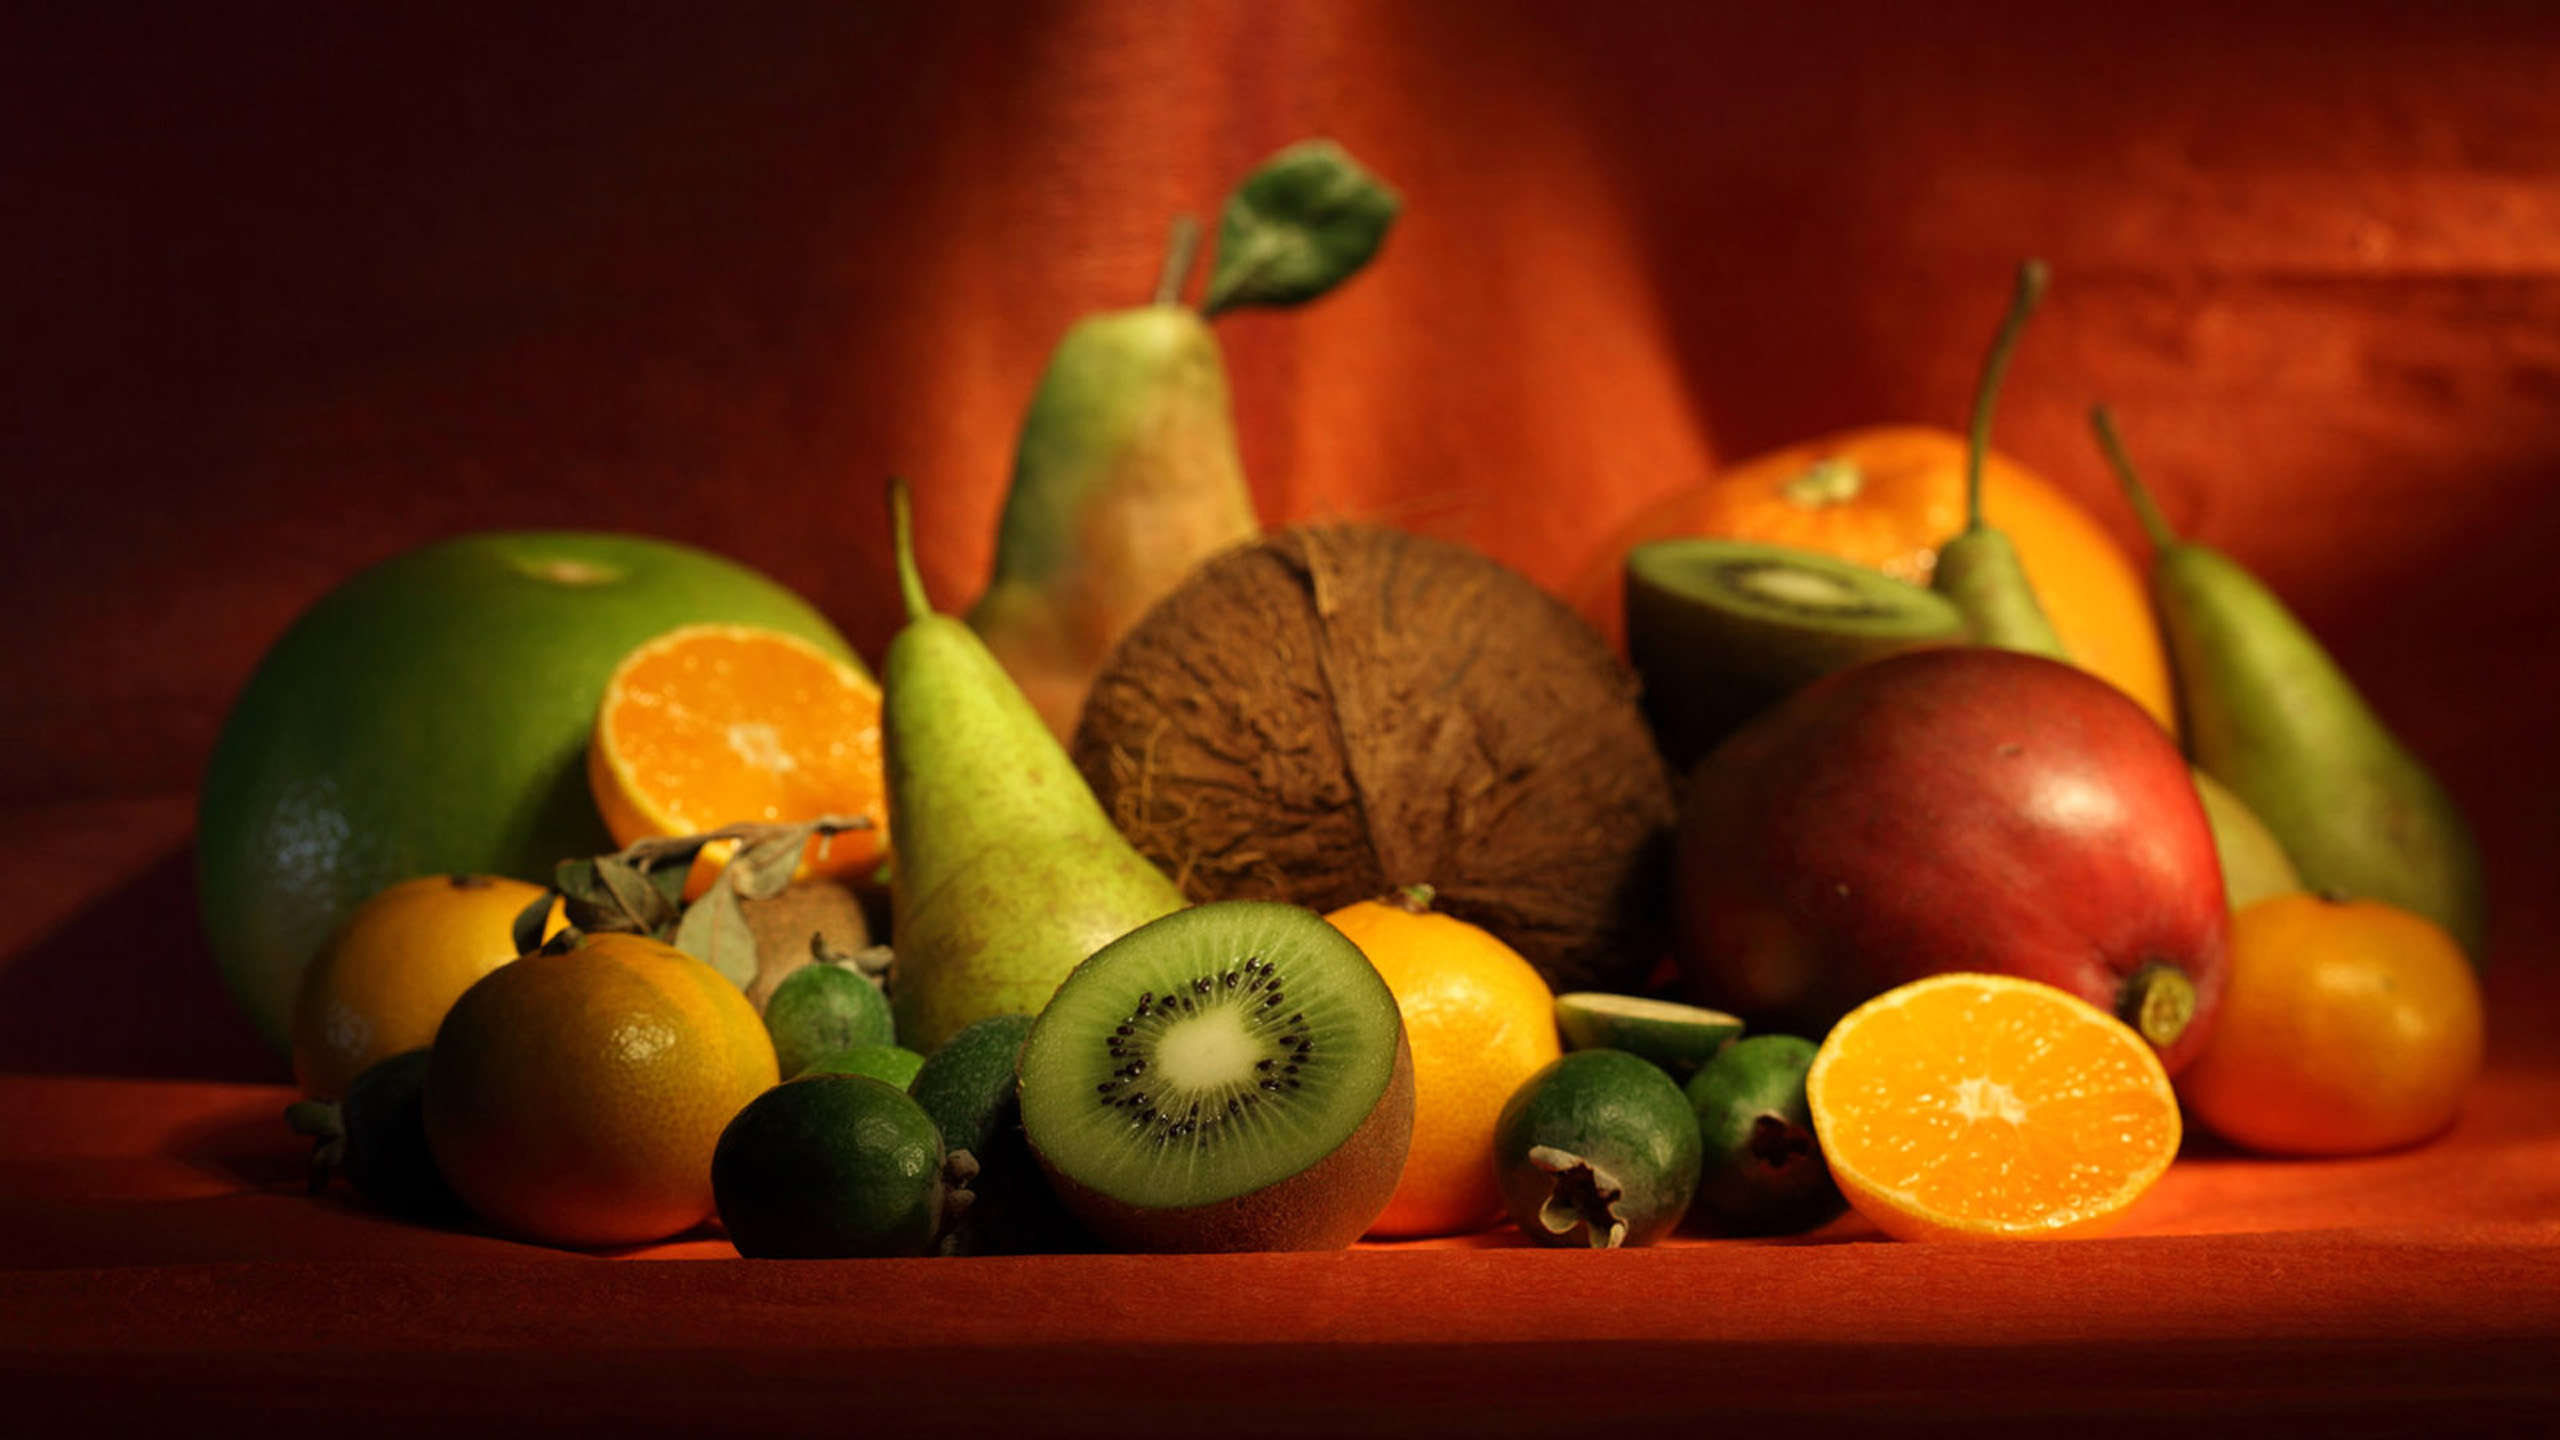 Rich in fruits and vegetables Wallpaper 2560x1440 Download 2560x1440